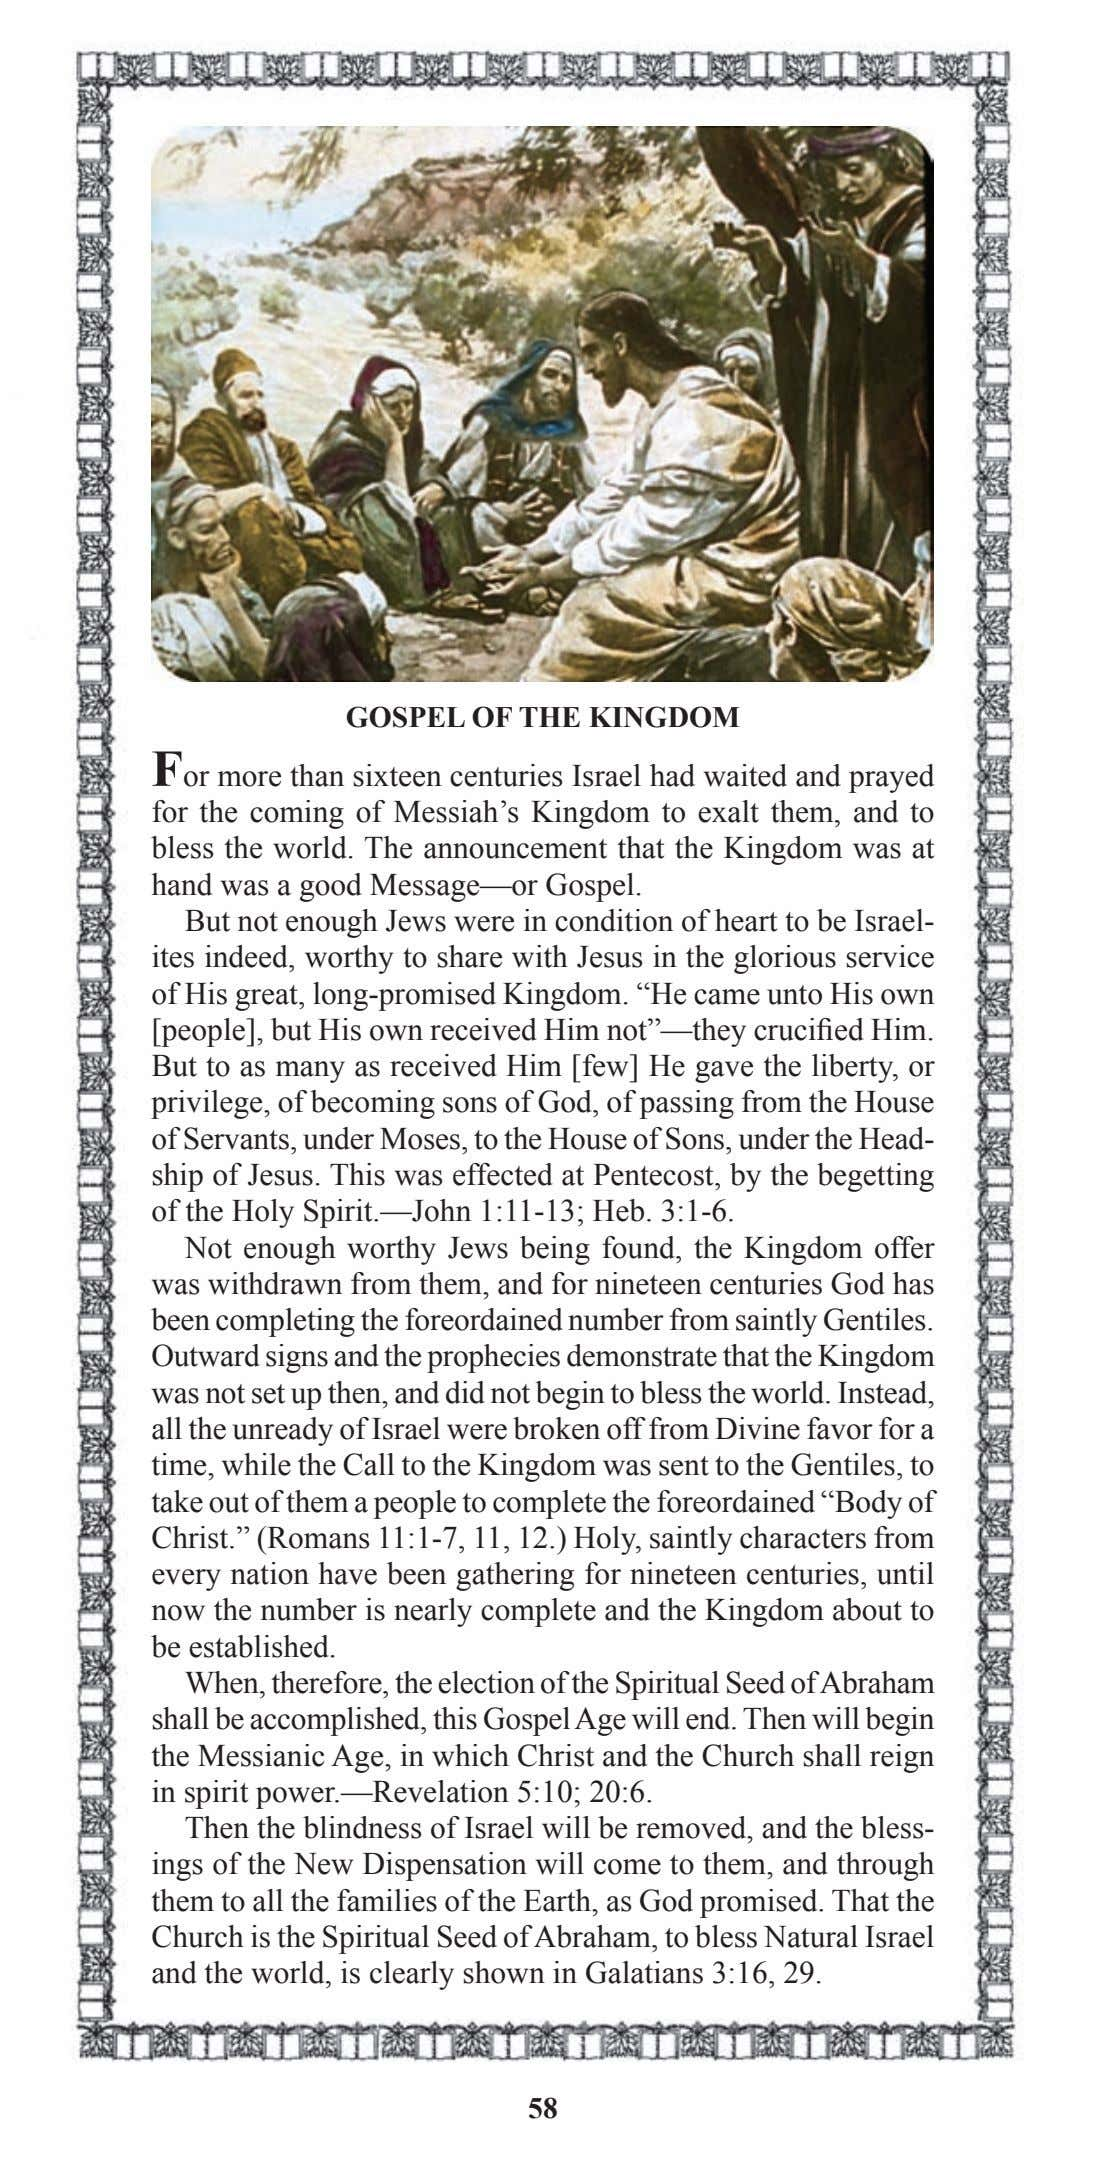 GOSPEL OF THE KINGDOM For more than sixteen centuries Israel had waited and prayed for